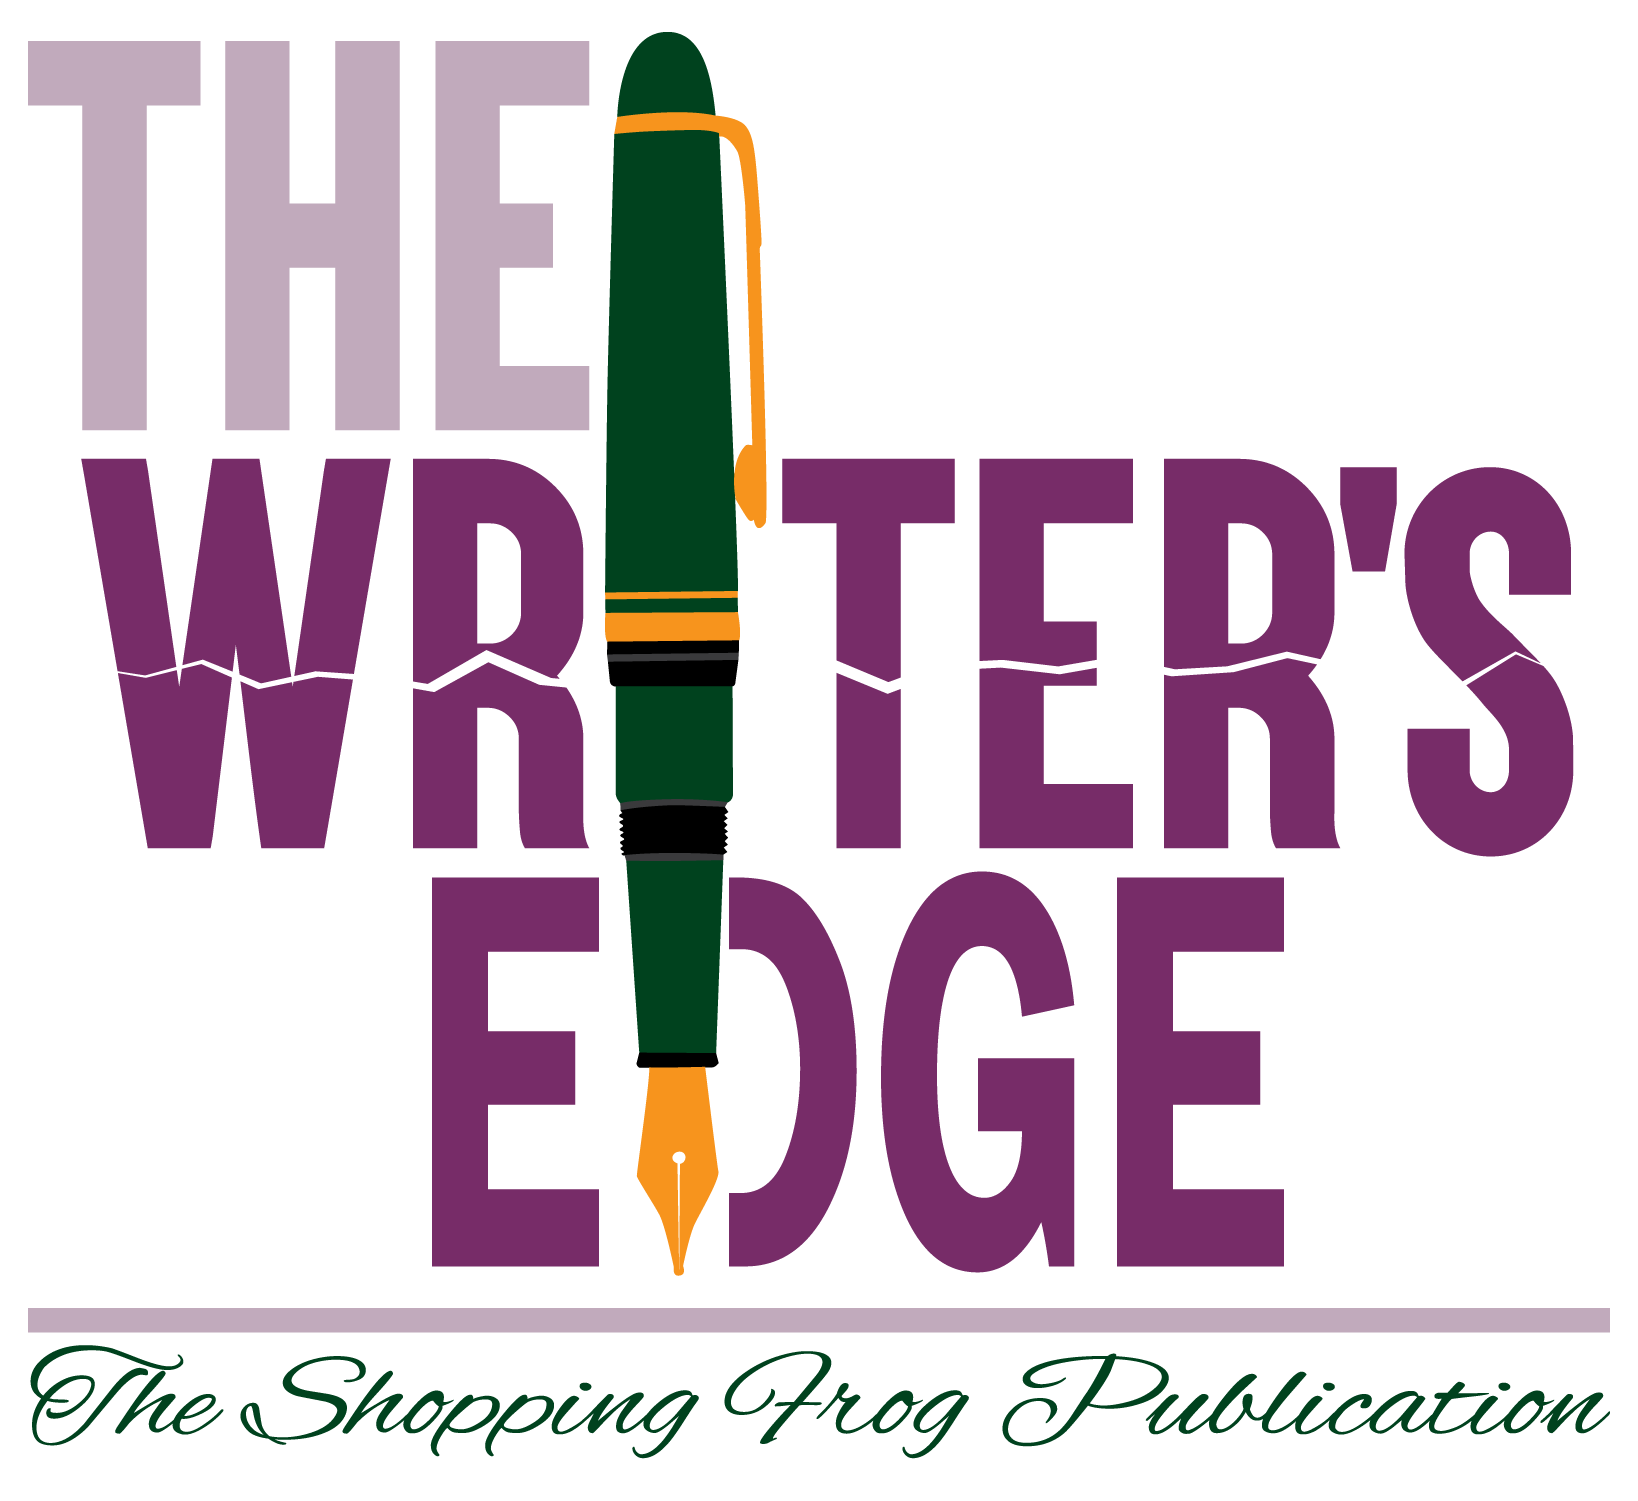 The Writers Edge